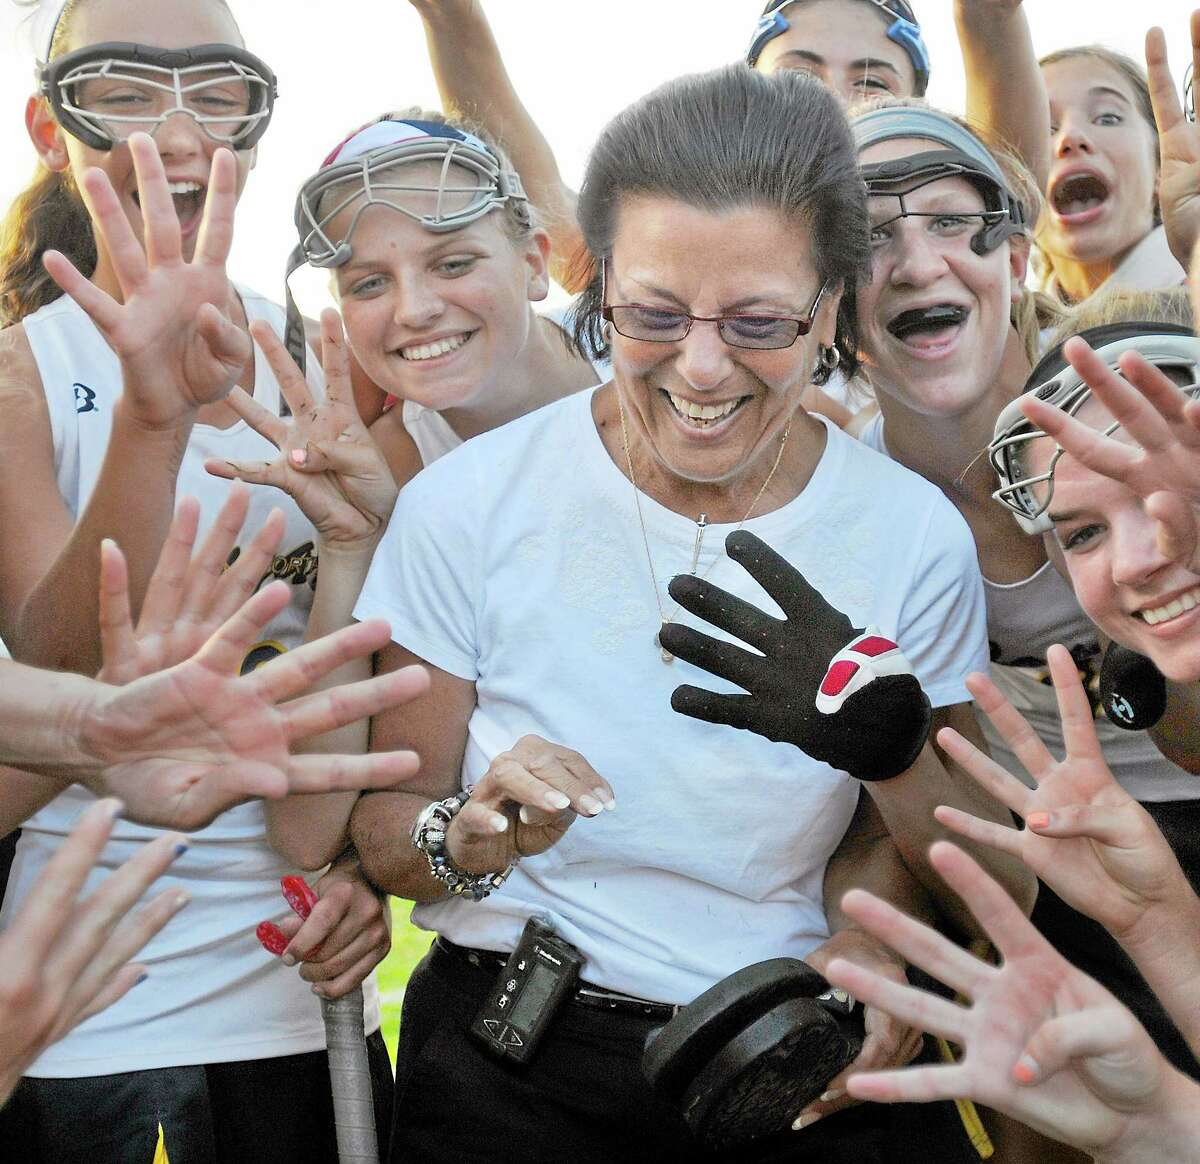 Haddam-Killingworth field hockey team surrounds head coach Patsy Kamercia following her 400th career win. H-K defeated Canton 4-2. Catherine Avalone - The Middletown Press